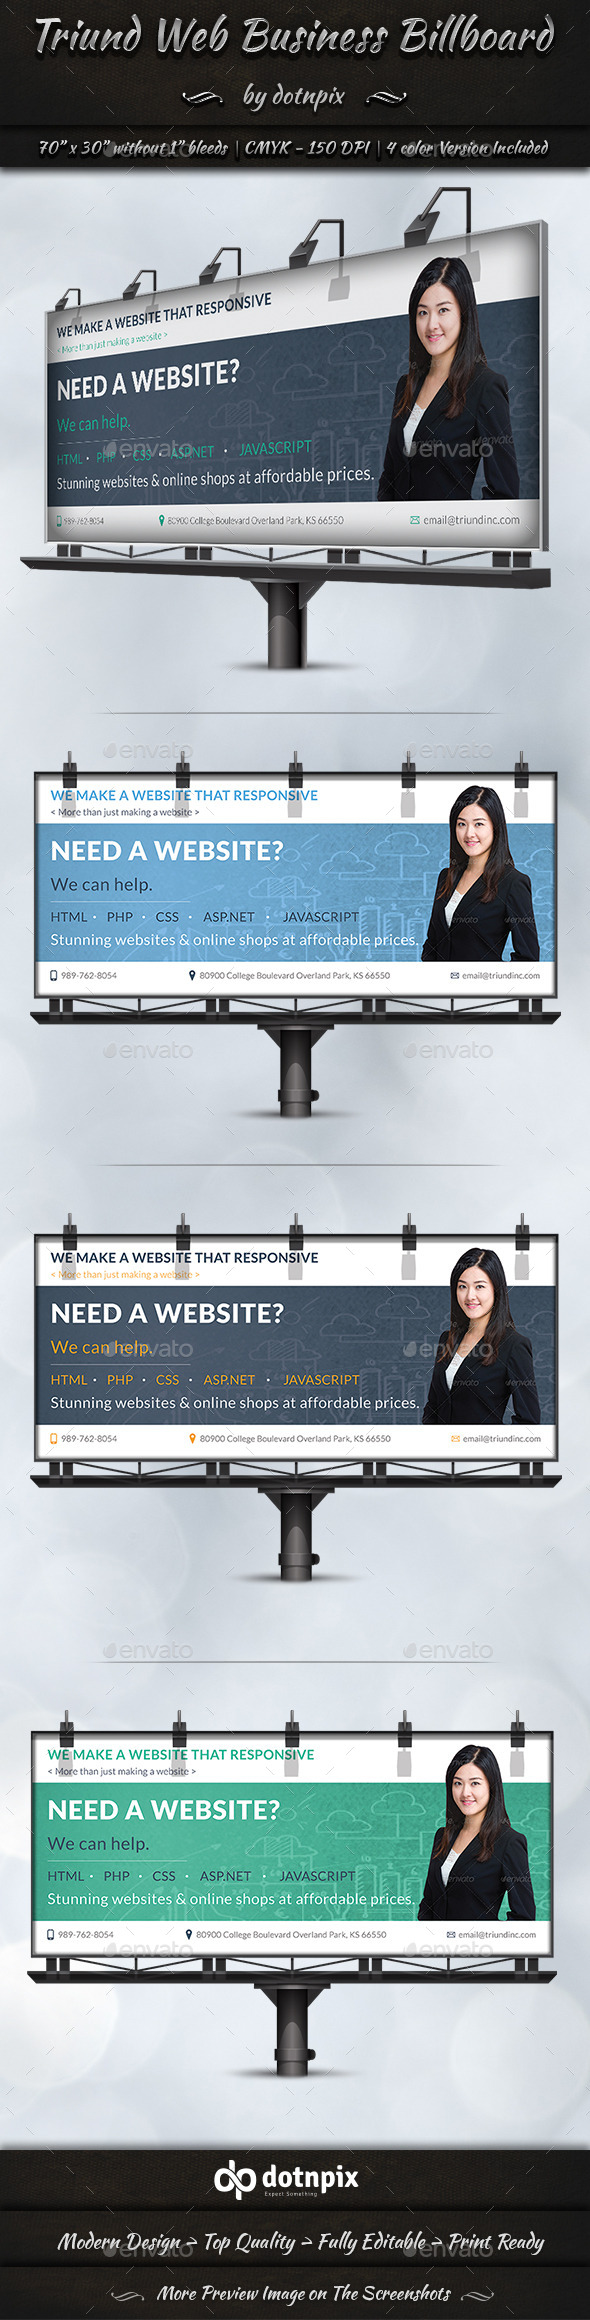 GraphicRiver Triund Web Business Billboard 9273031